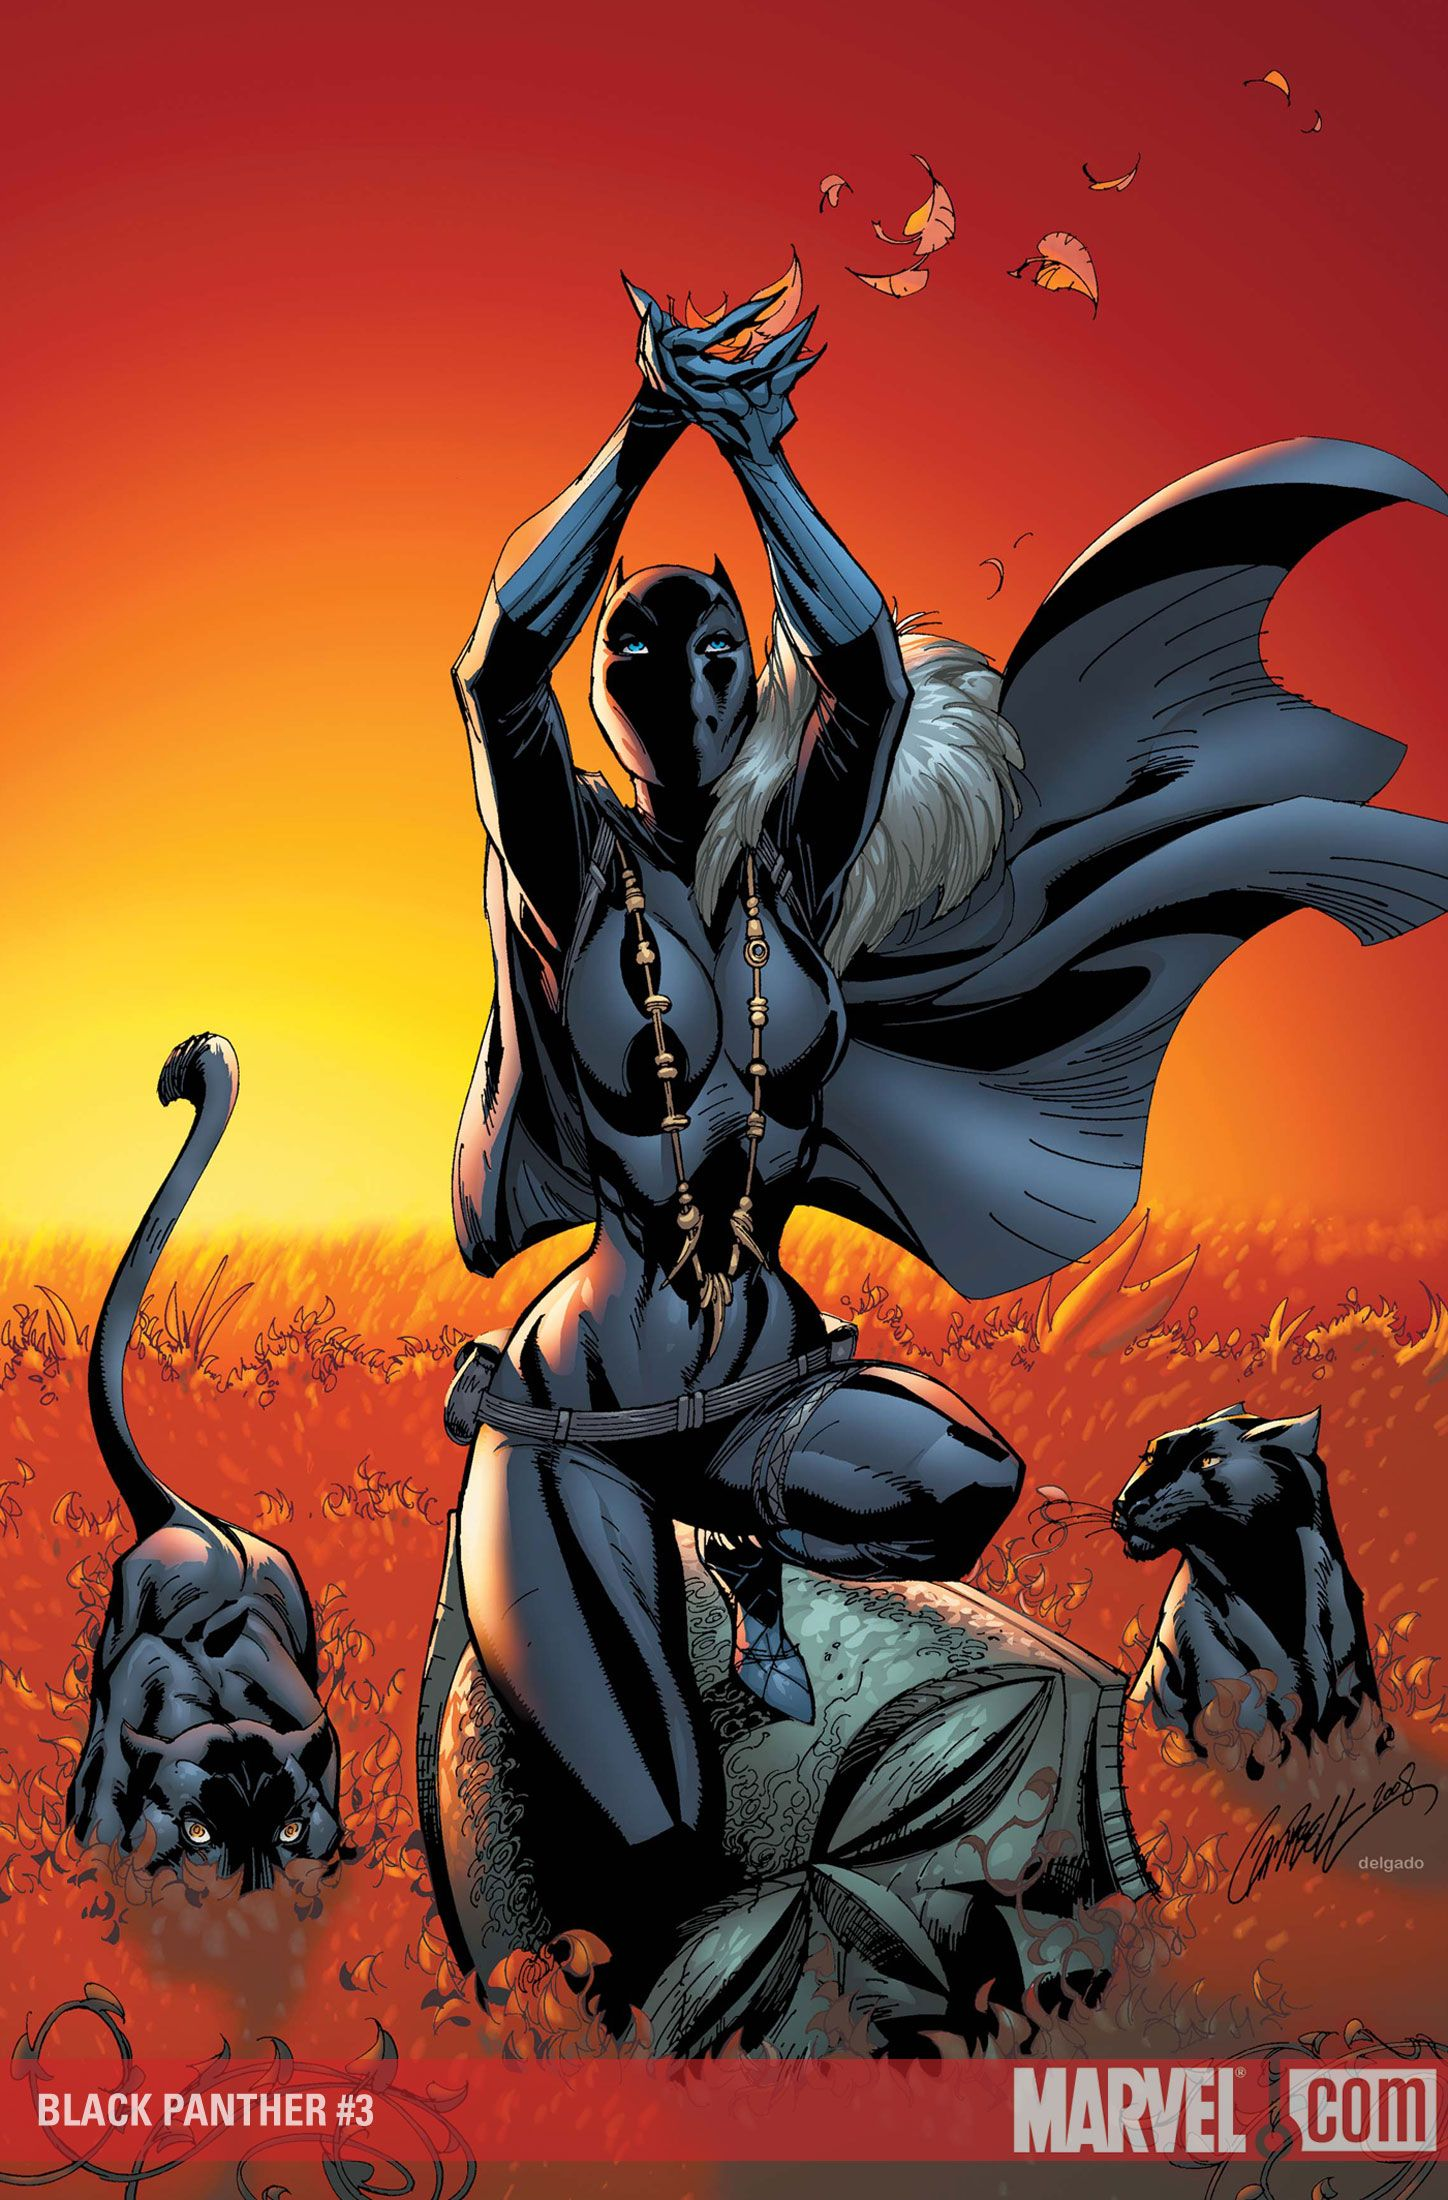 scott campbell fawn girl image | BLACK PANTHER #3 | Cat ...